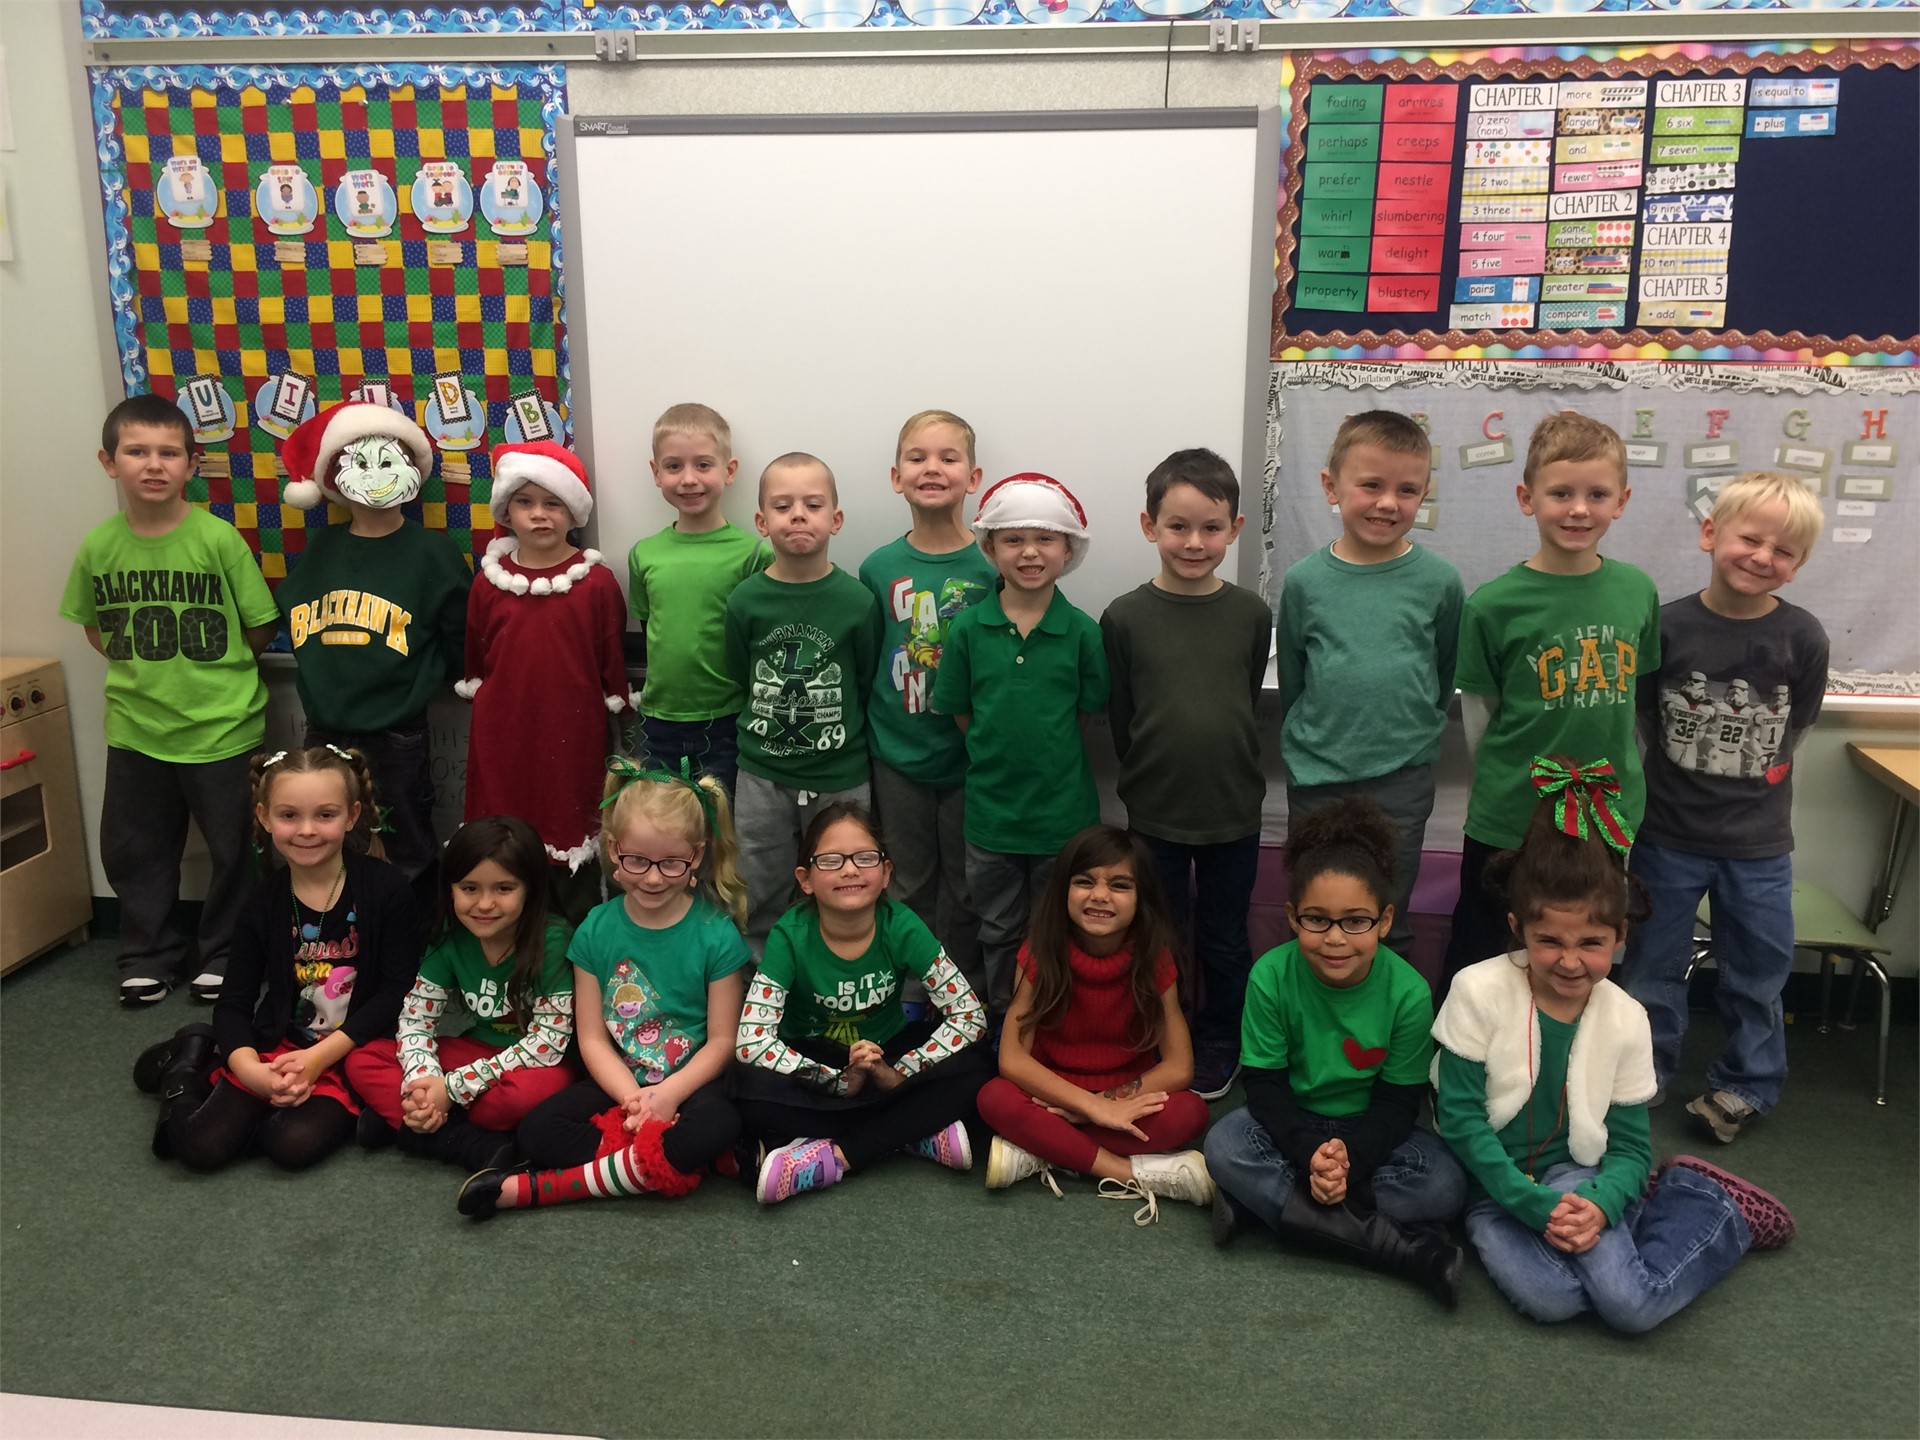 Room 100 Grinch Day